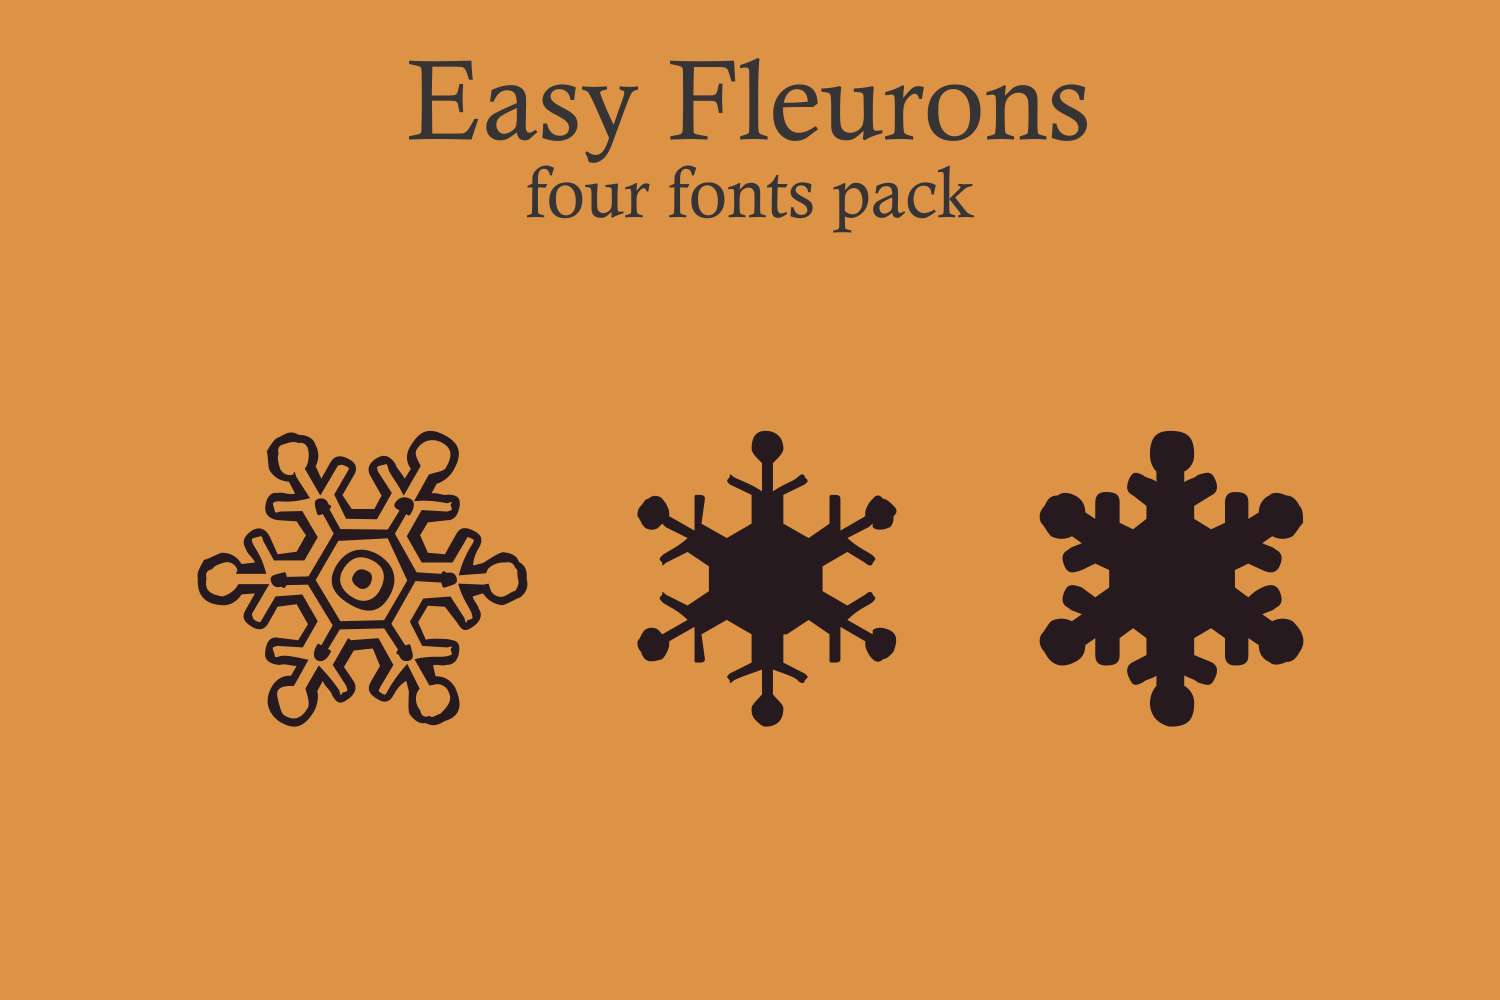 Easy Fleurons Pack (four fonts) example image 6